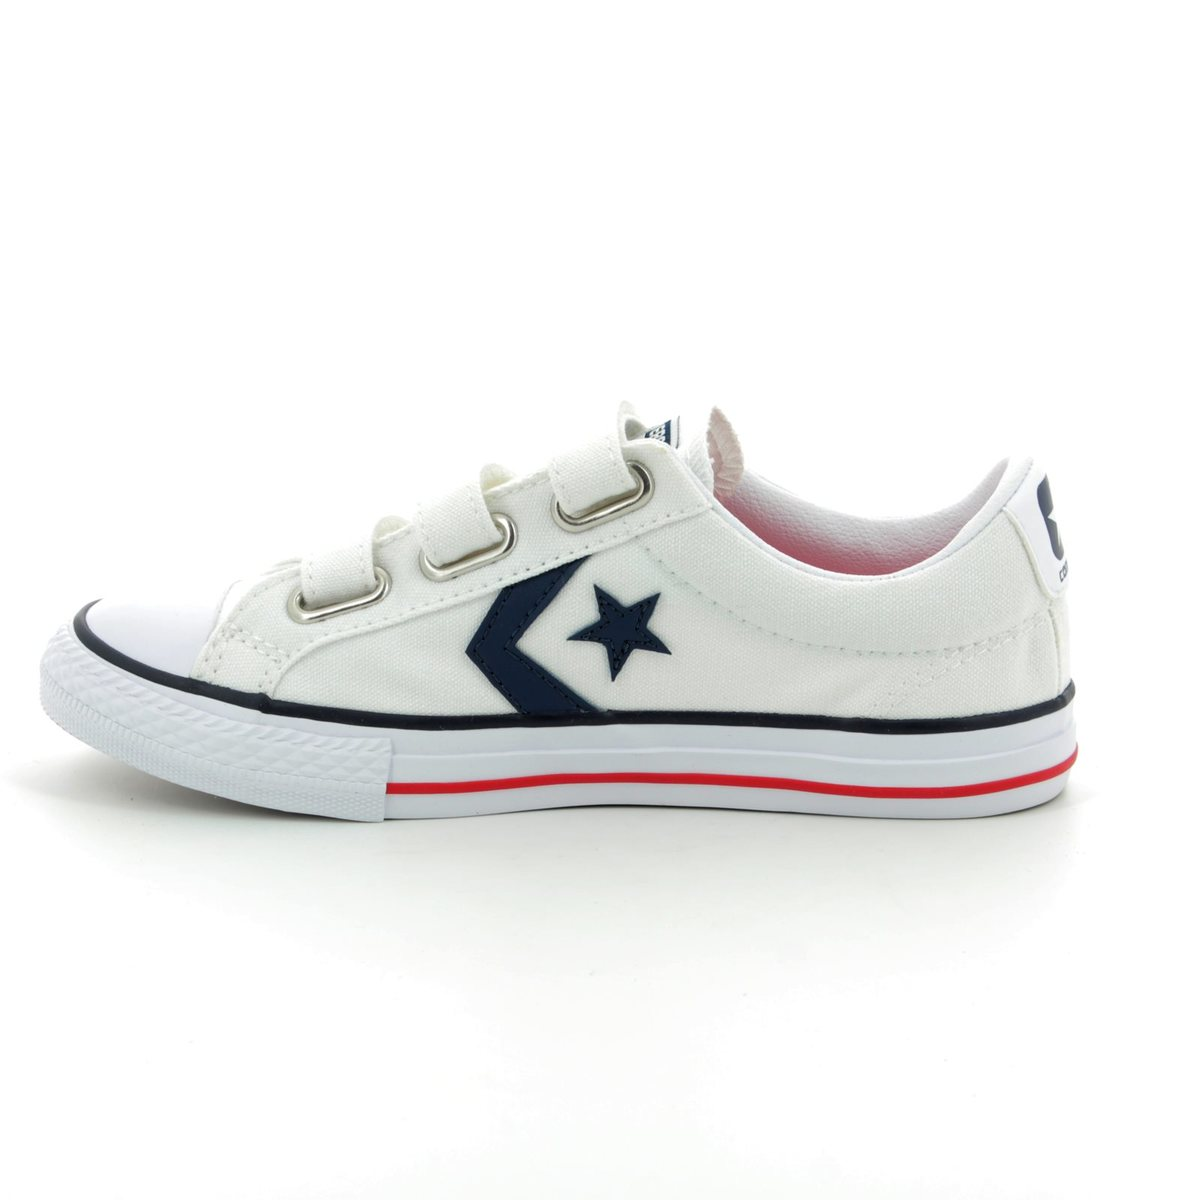 bd799b55087 Converse Trainers - White multi - 315660 194 Star Player 3V OX Velcro